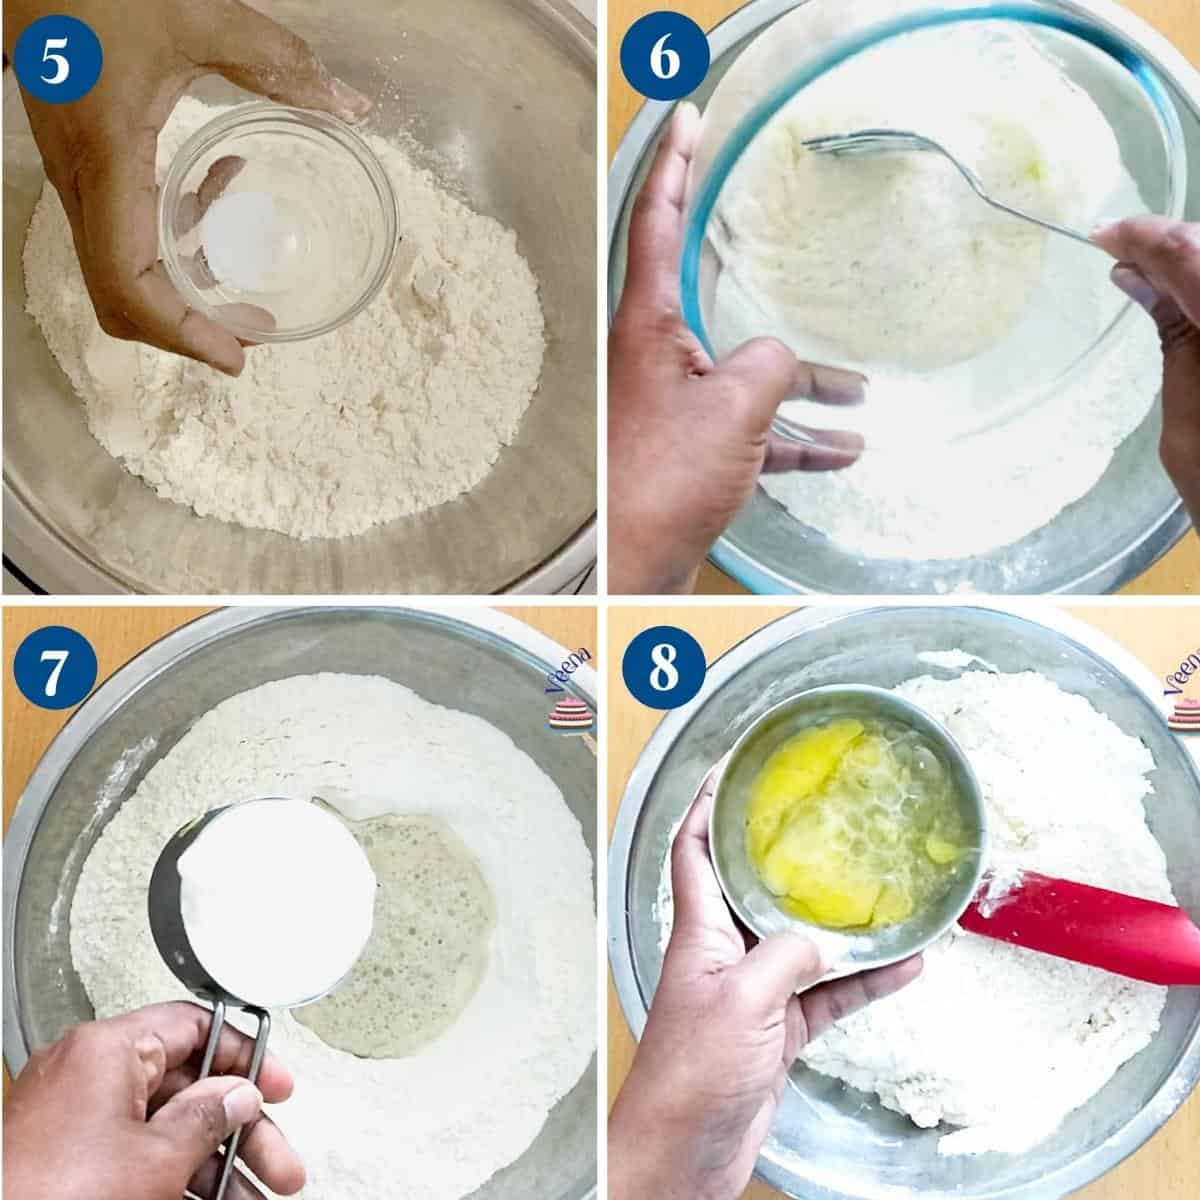 Progress pictures collage making the naan bread dough.